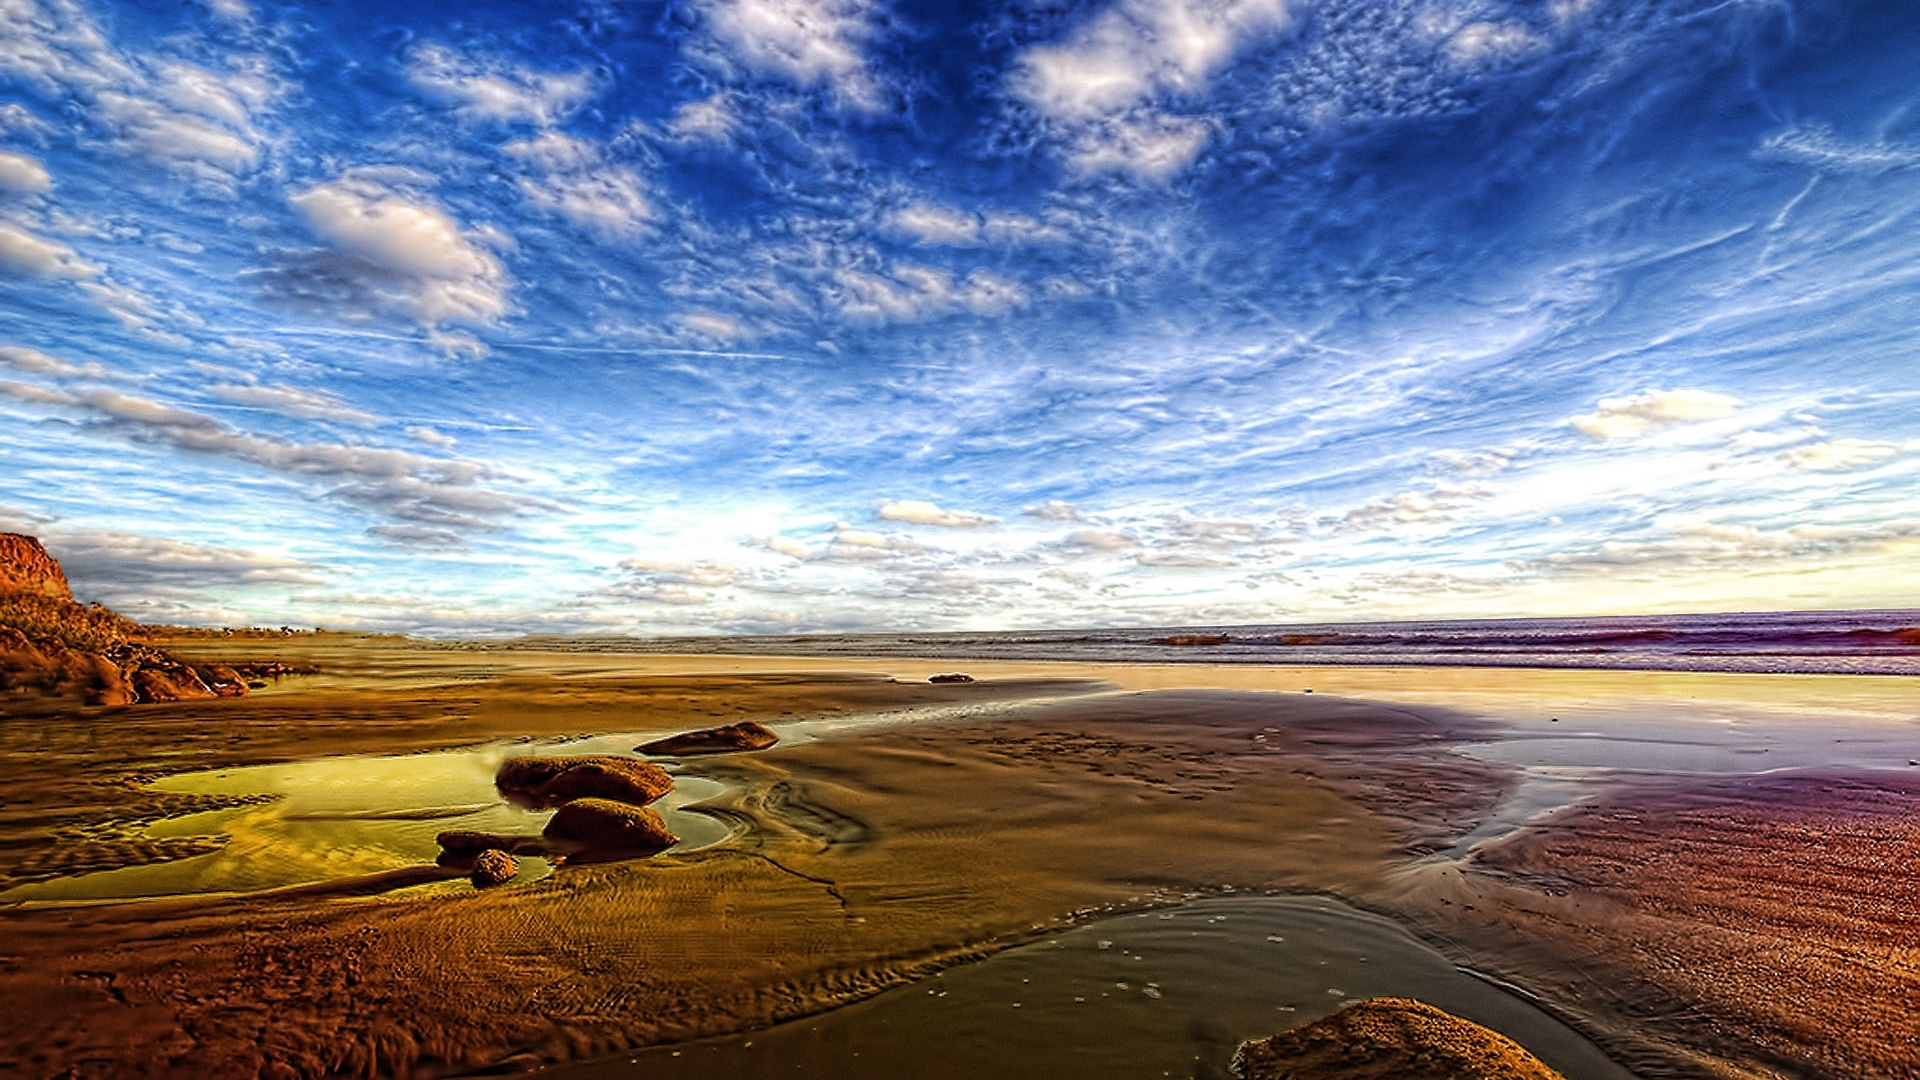 Download · Hd Golden Beach Hdr Wallpaper Download Free